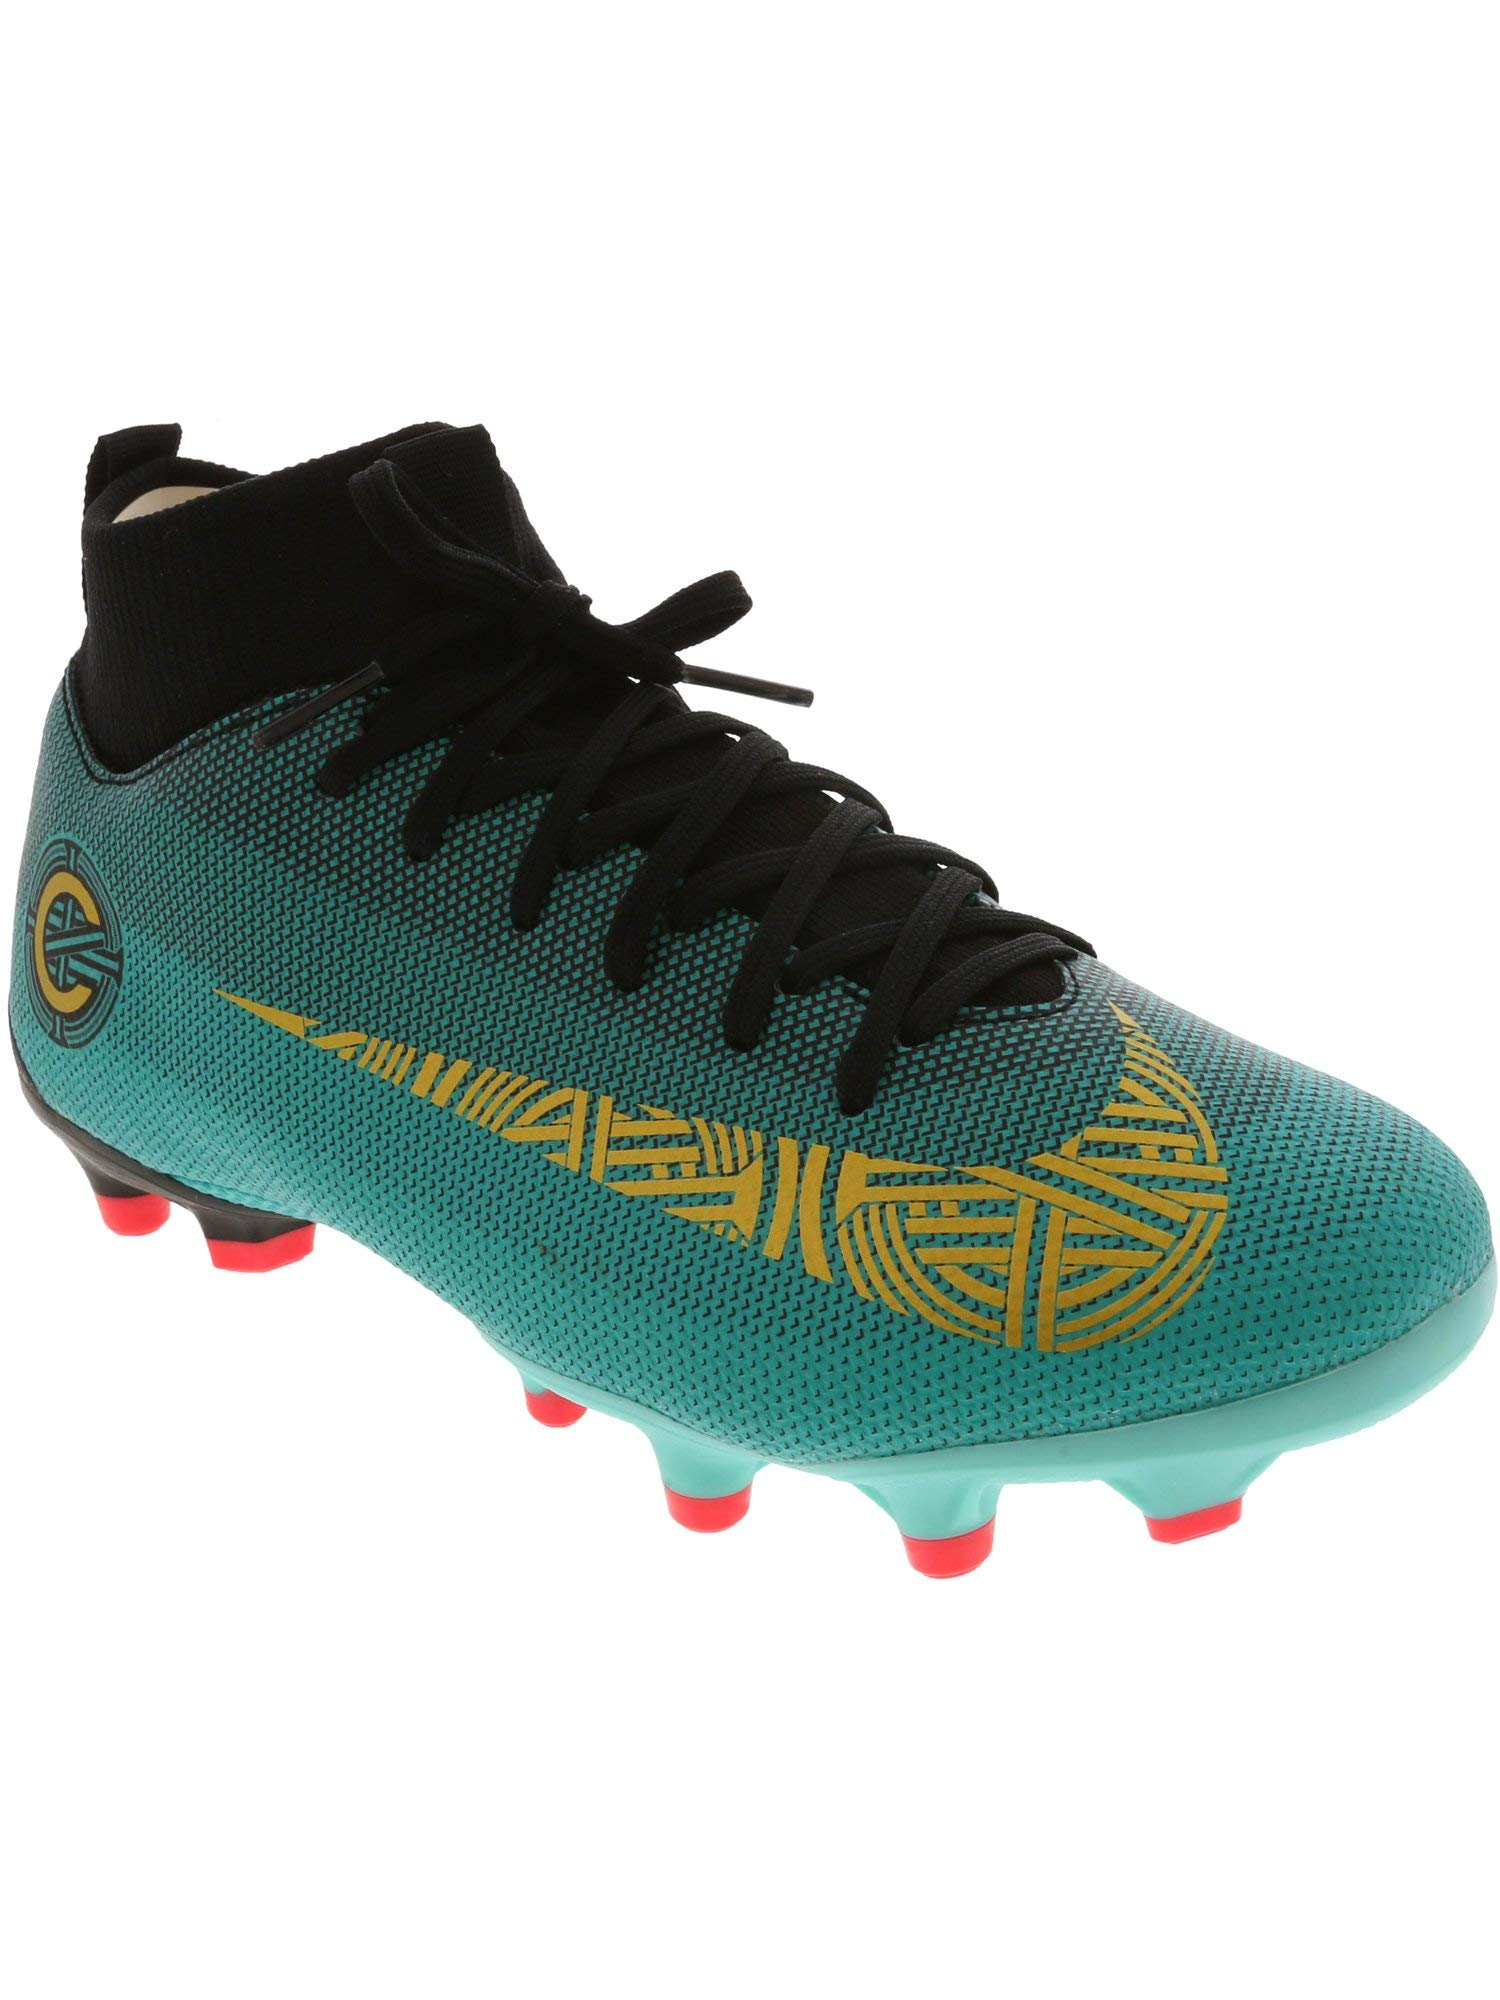 c990ff048 Nike Superfly 6 Academy Gs Cr7 Clear Jade/Metallic Vivid Gold Ankle-High  Soccer Shoe - 4M